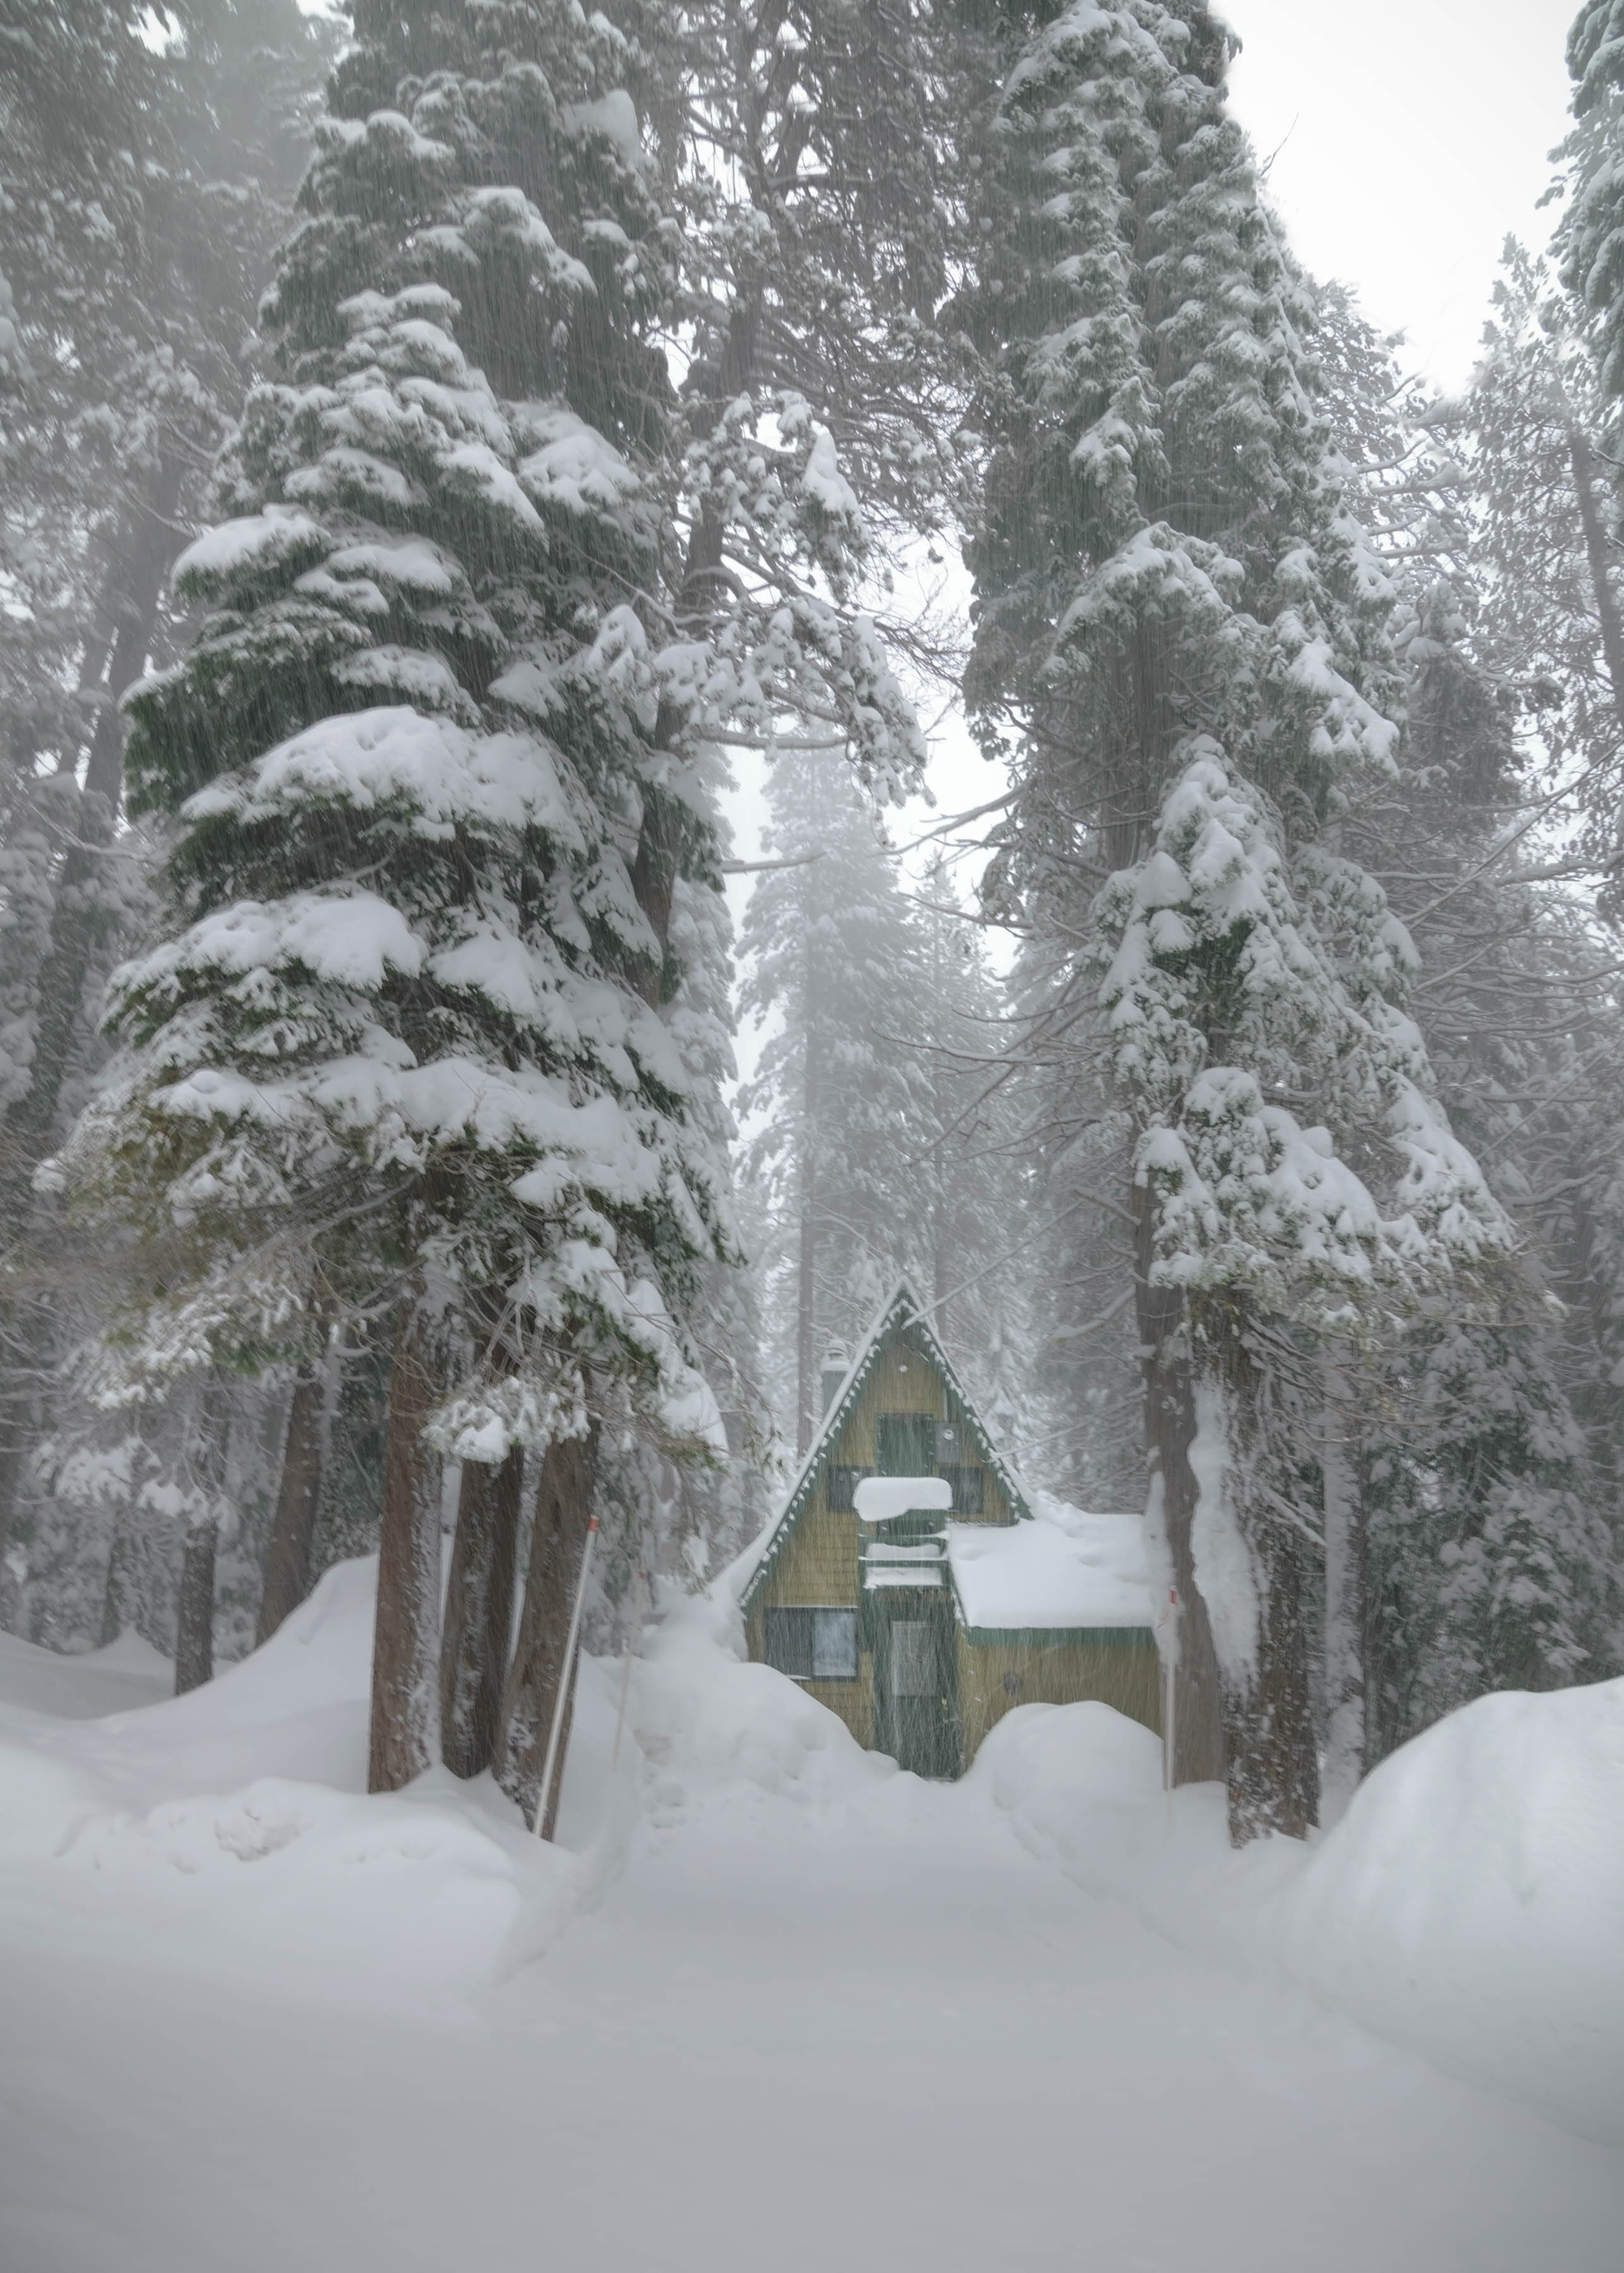 Soda Springs California - Exploring Winter